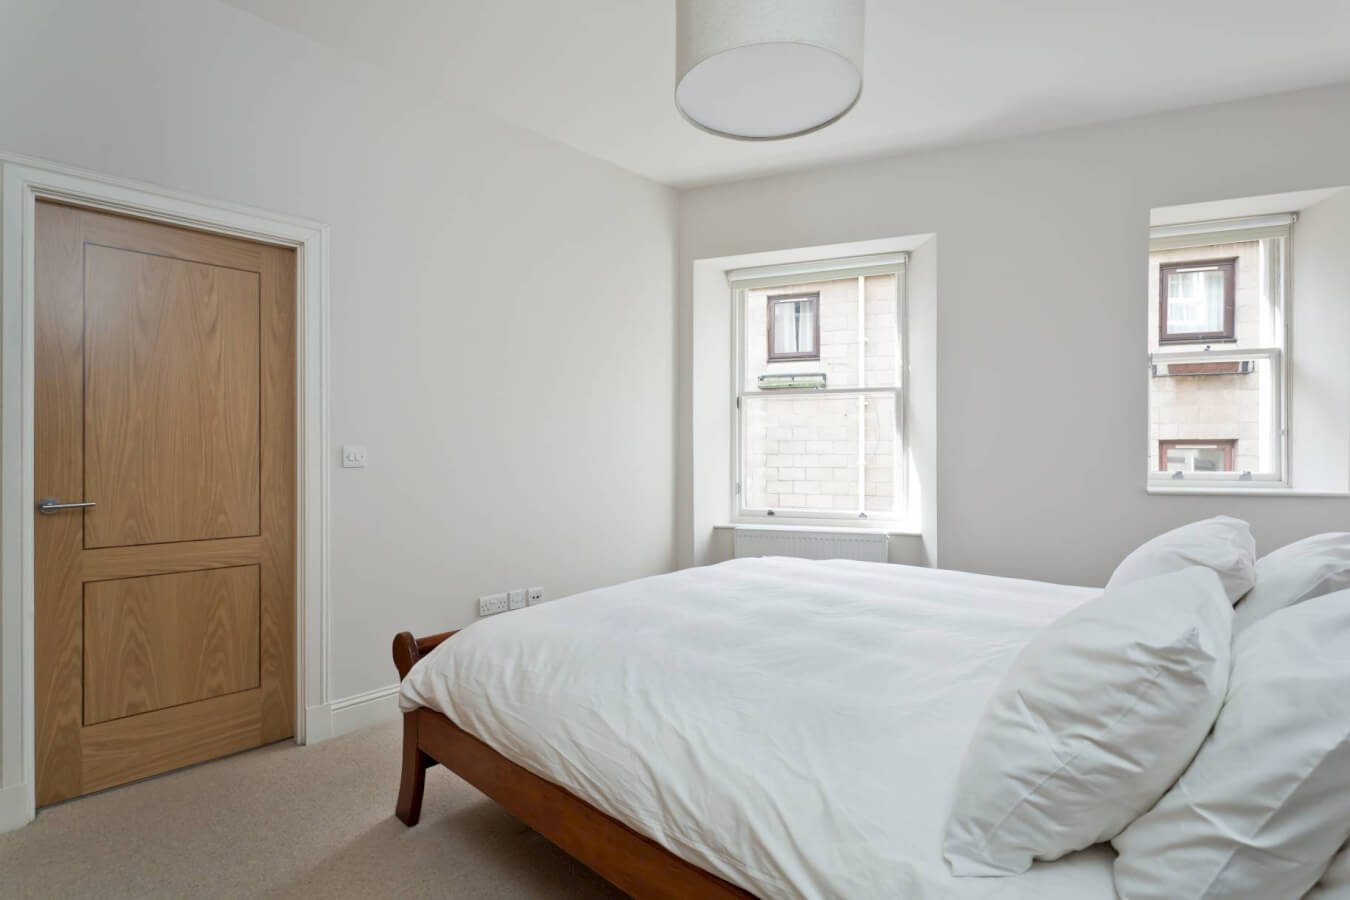 Property of the month: Spacious and bright mews house